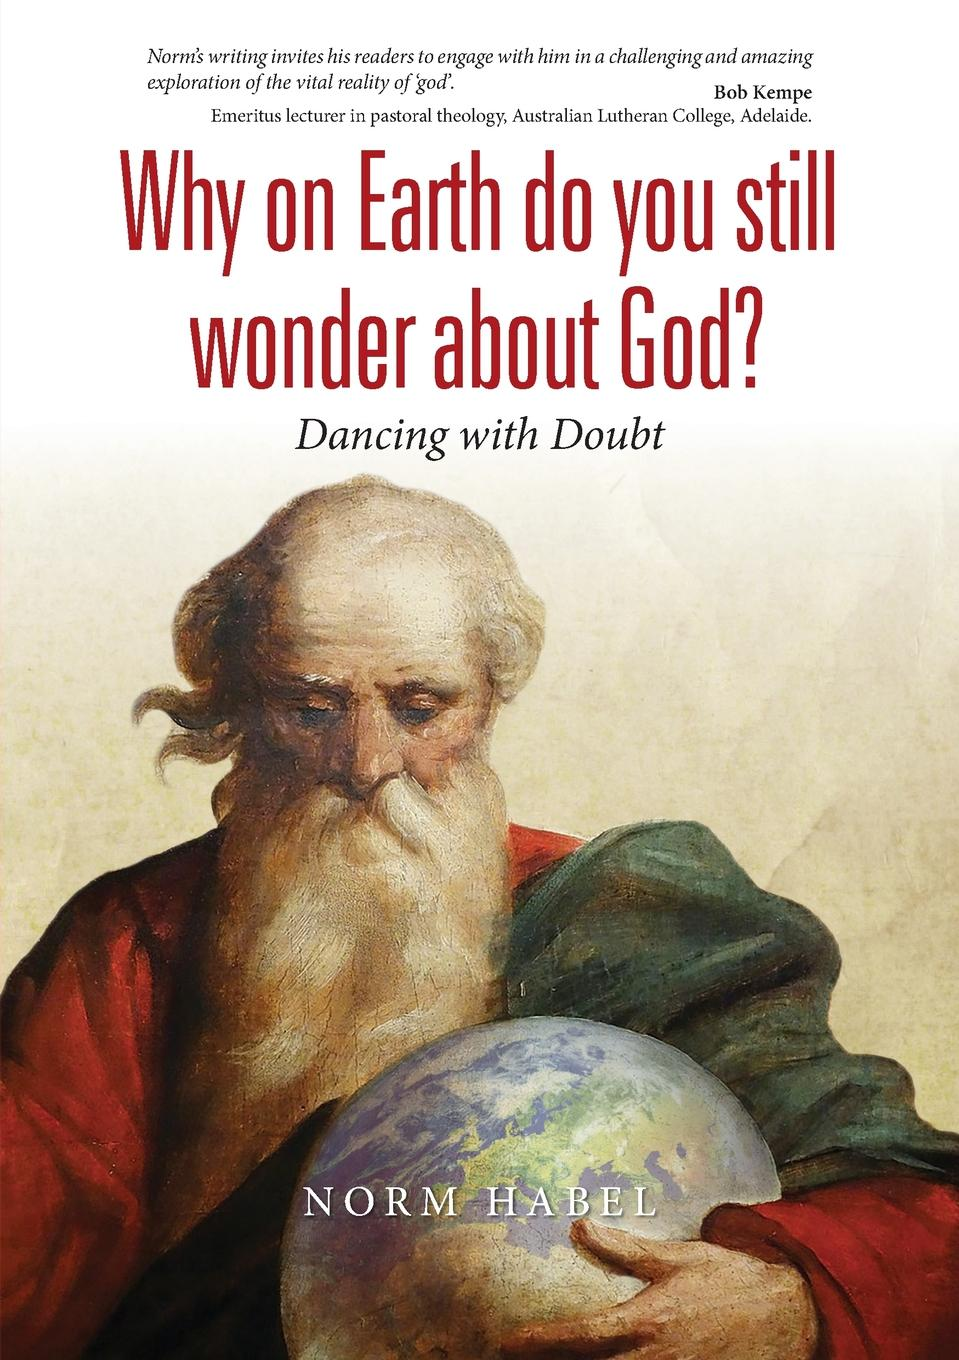 Norm Habel Why on Earth do you still wonder about God.. Dancing with Doubt still me